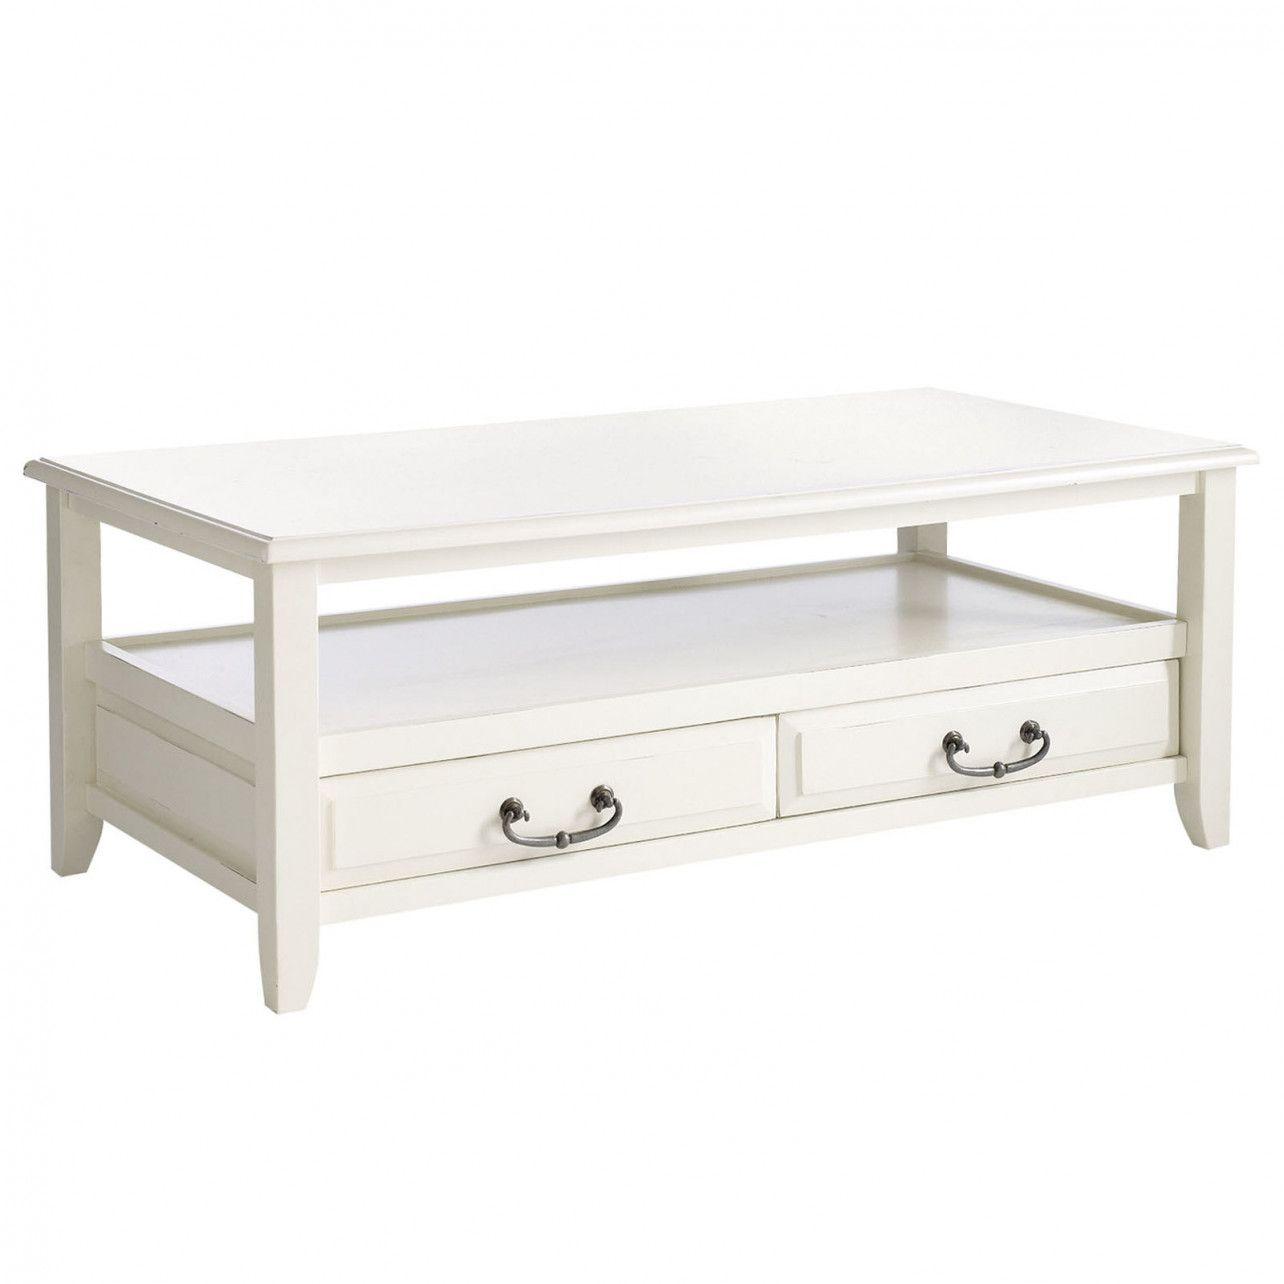 20 Lovely Pier One Coffee Tables 2019 Antique White Coffee Table